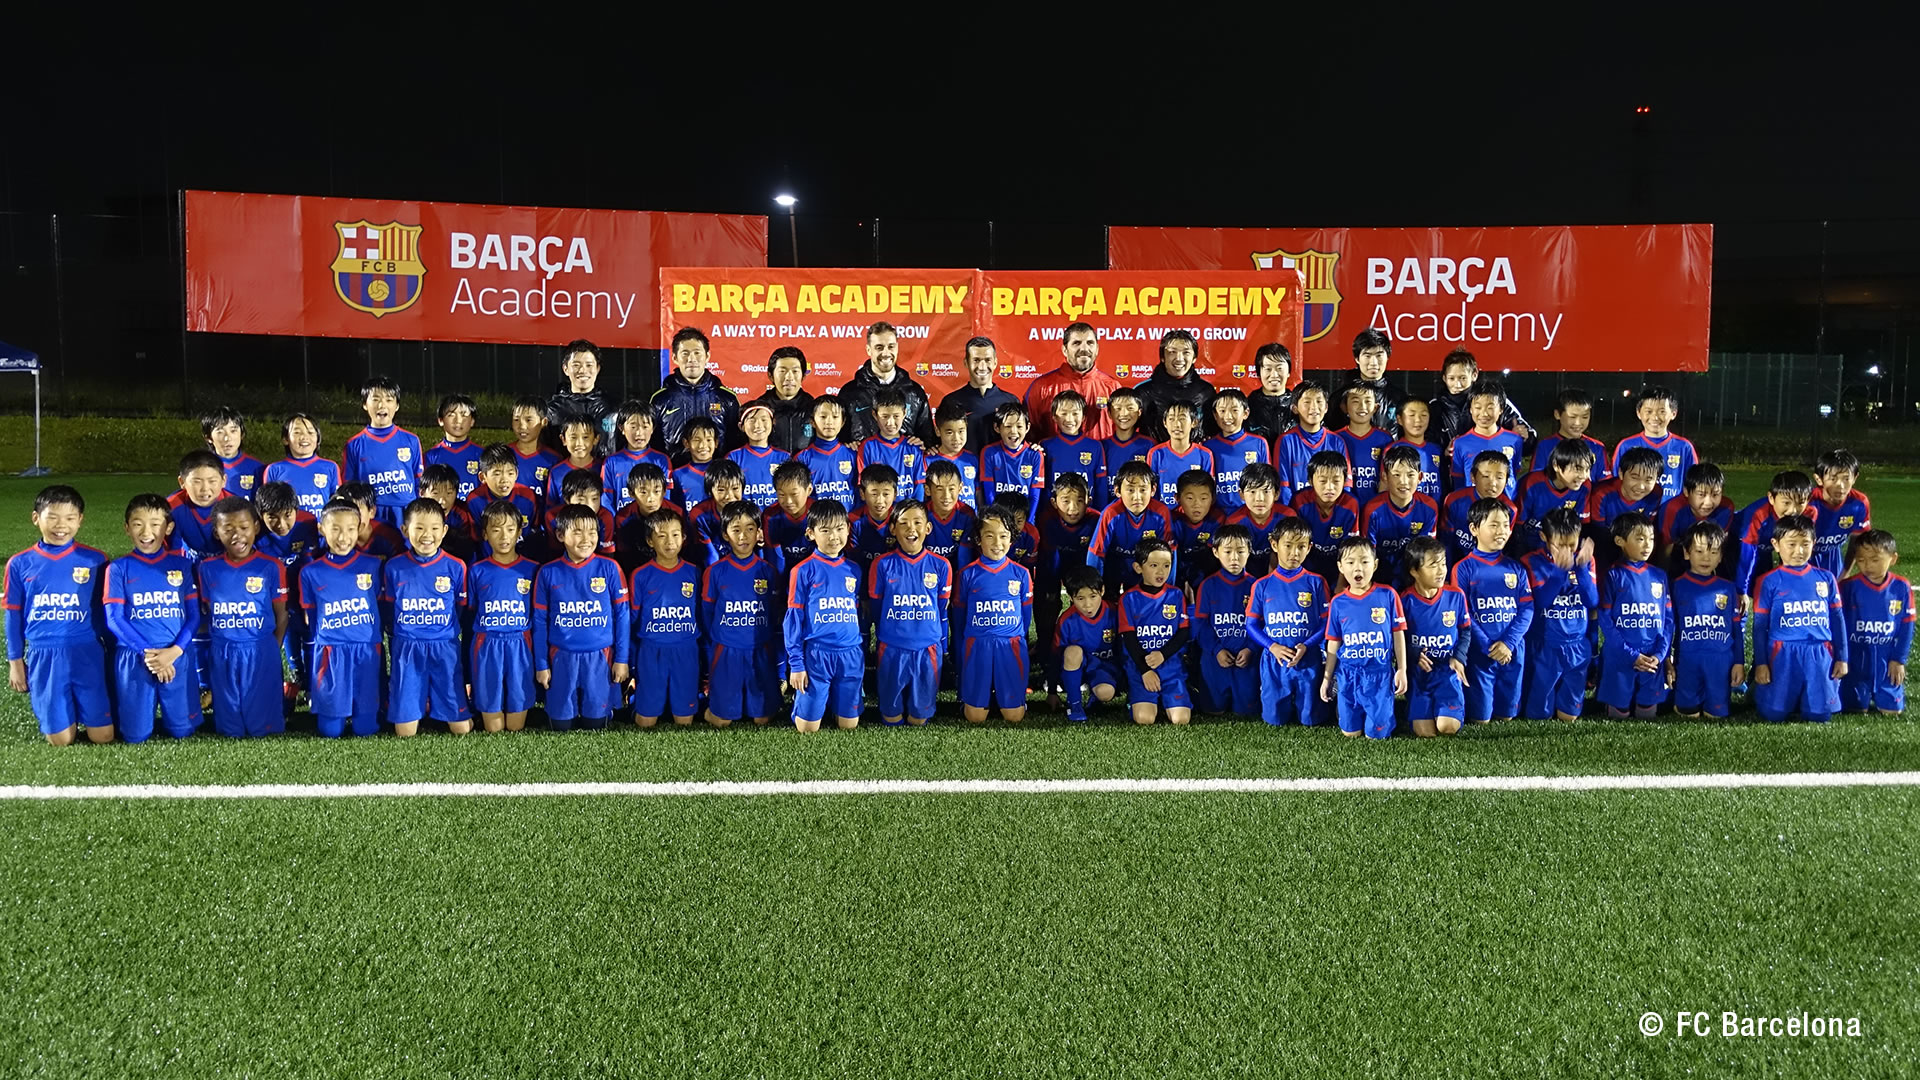 Barca and Rakuten Nurture Young Soccer Players in Japan